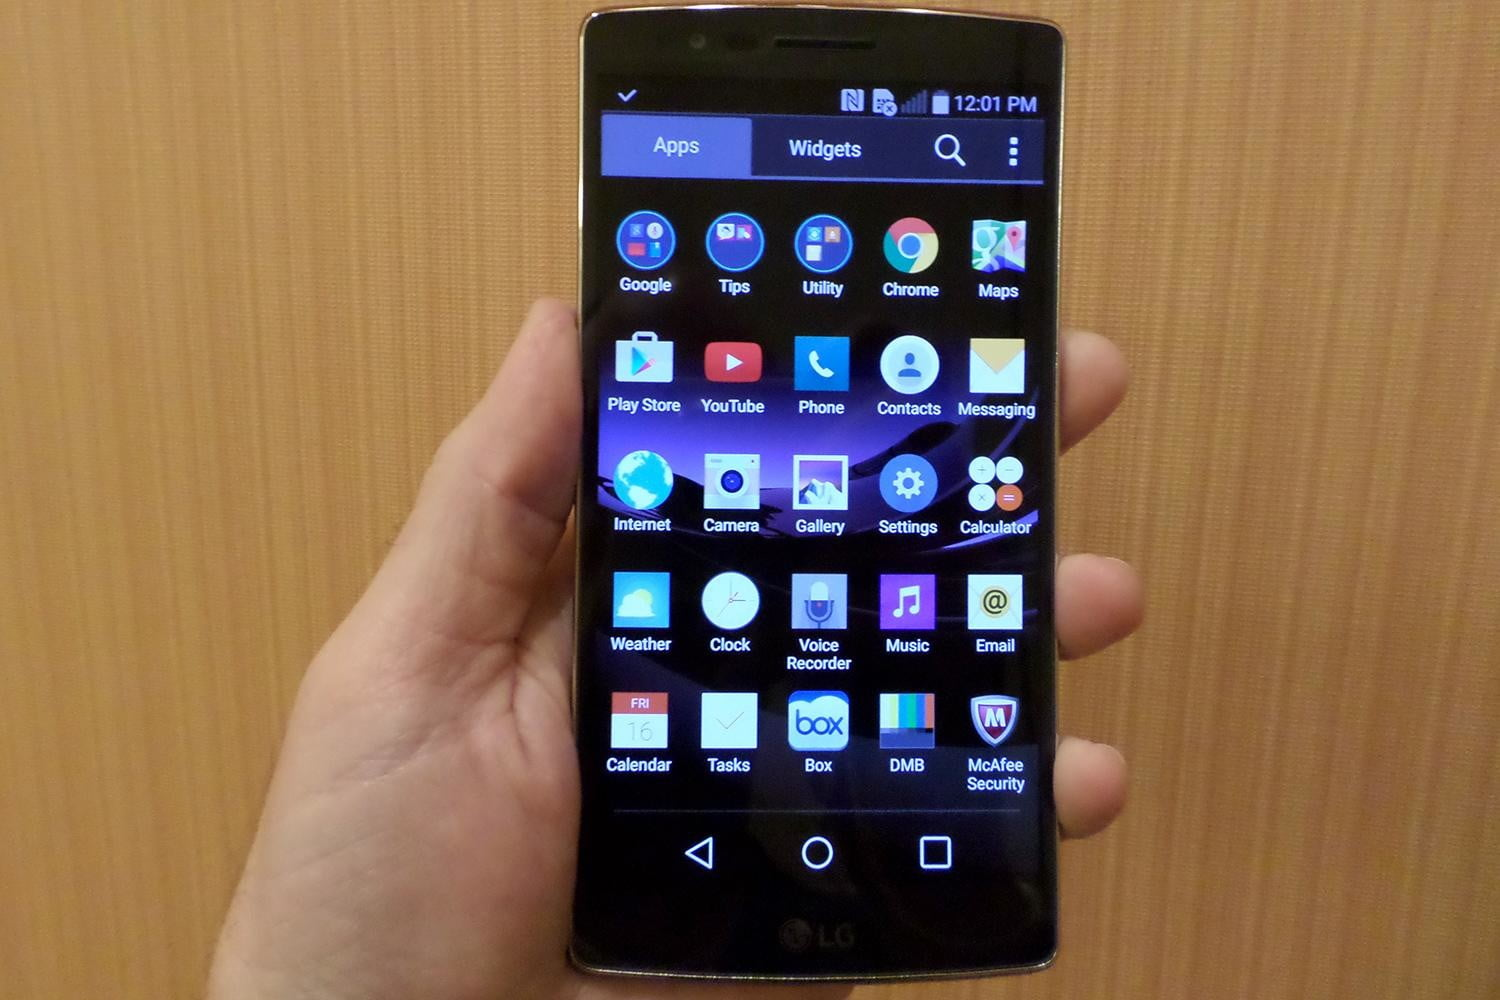 Lgs G Flex 2 Is Faster Better Looking And More Durable Digital Samsung Galaxy V G313 Dual Sim Trends